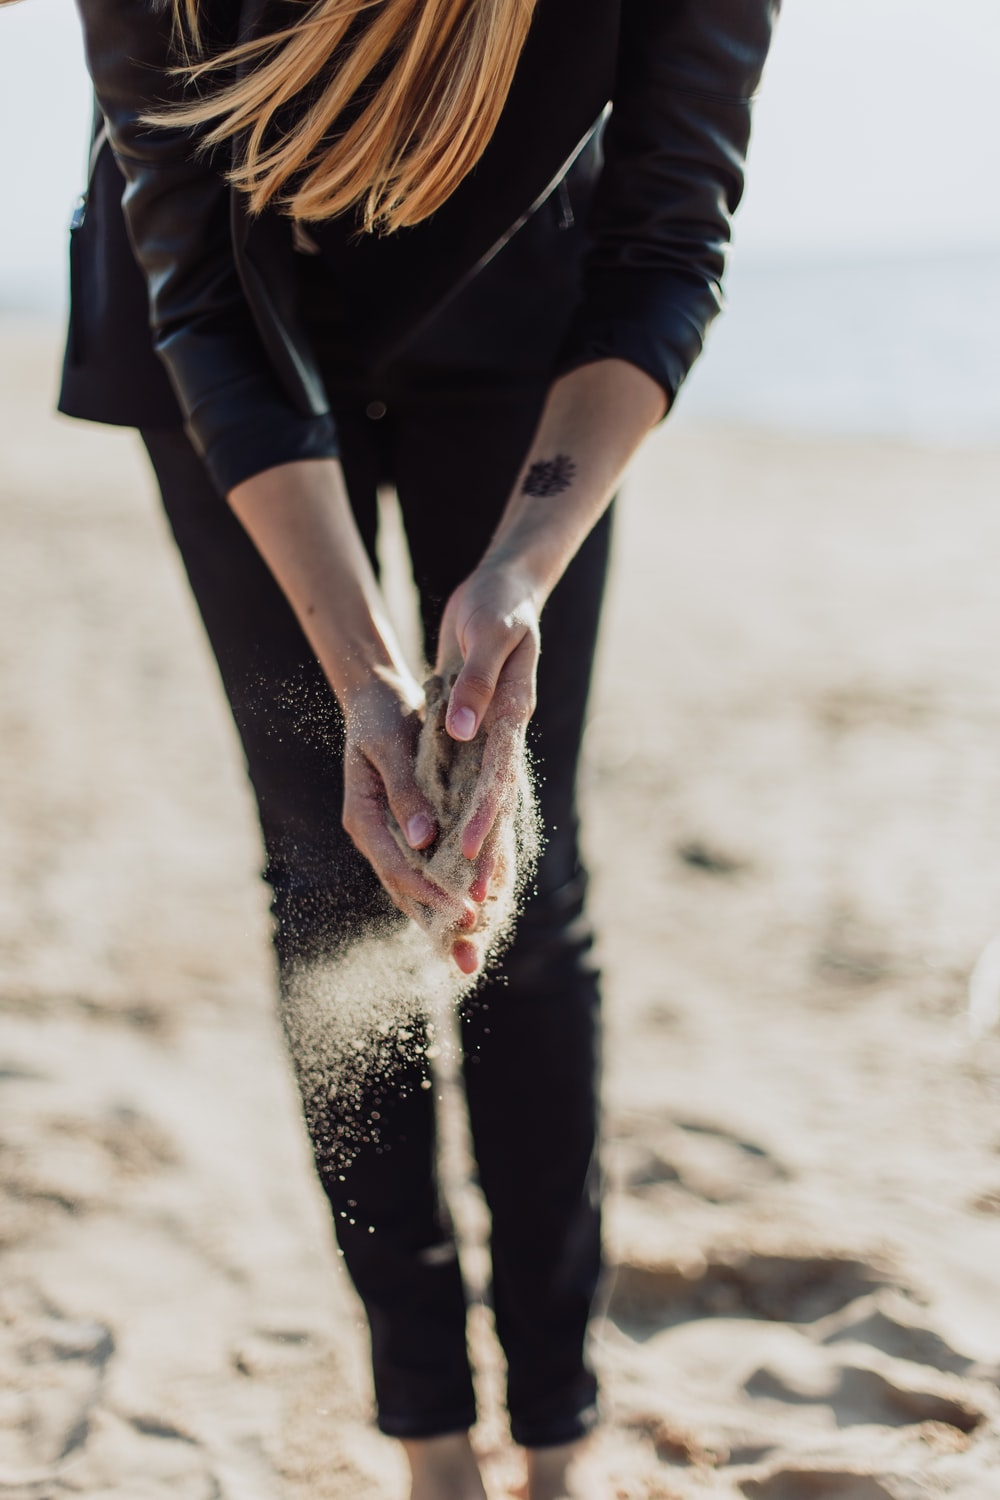 person holding brown sand during daytime